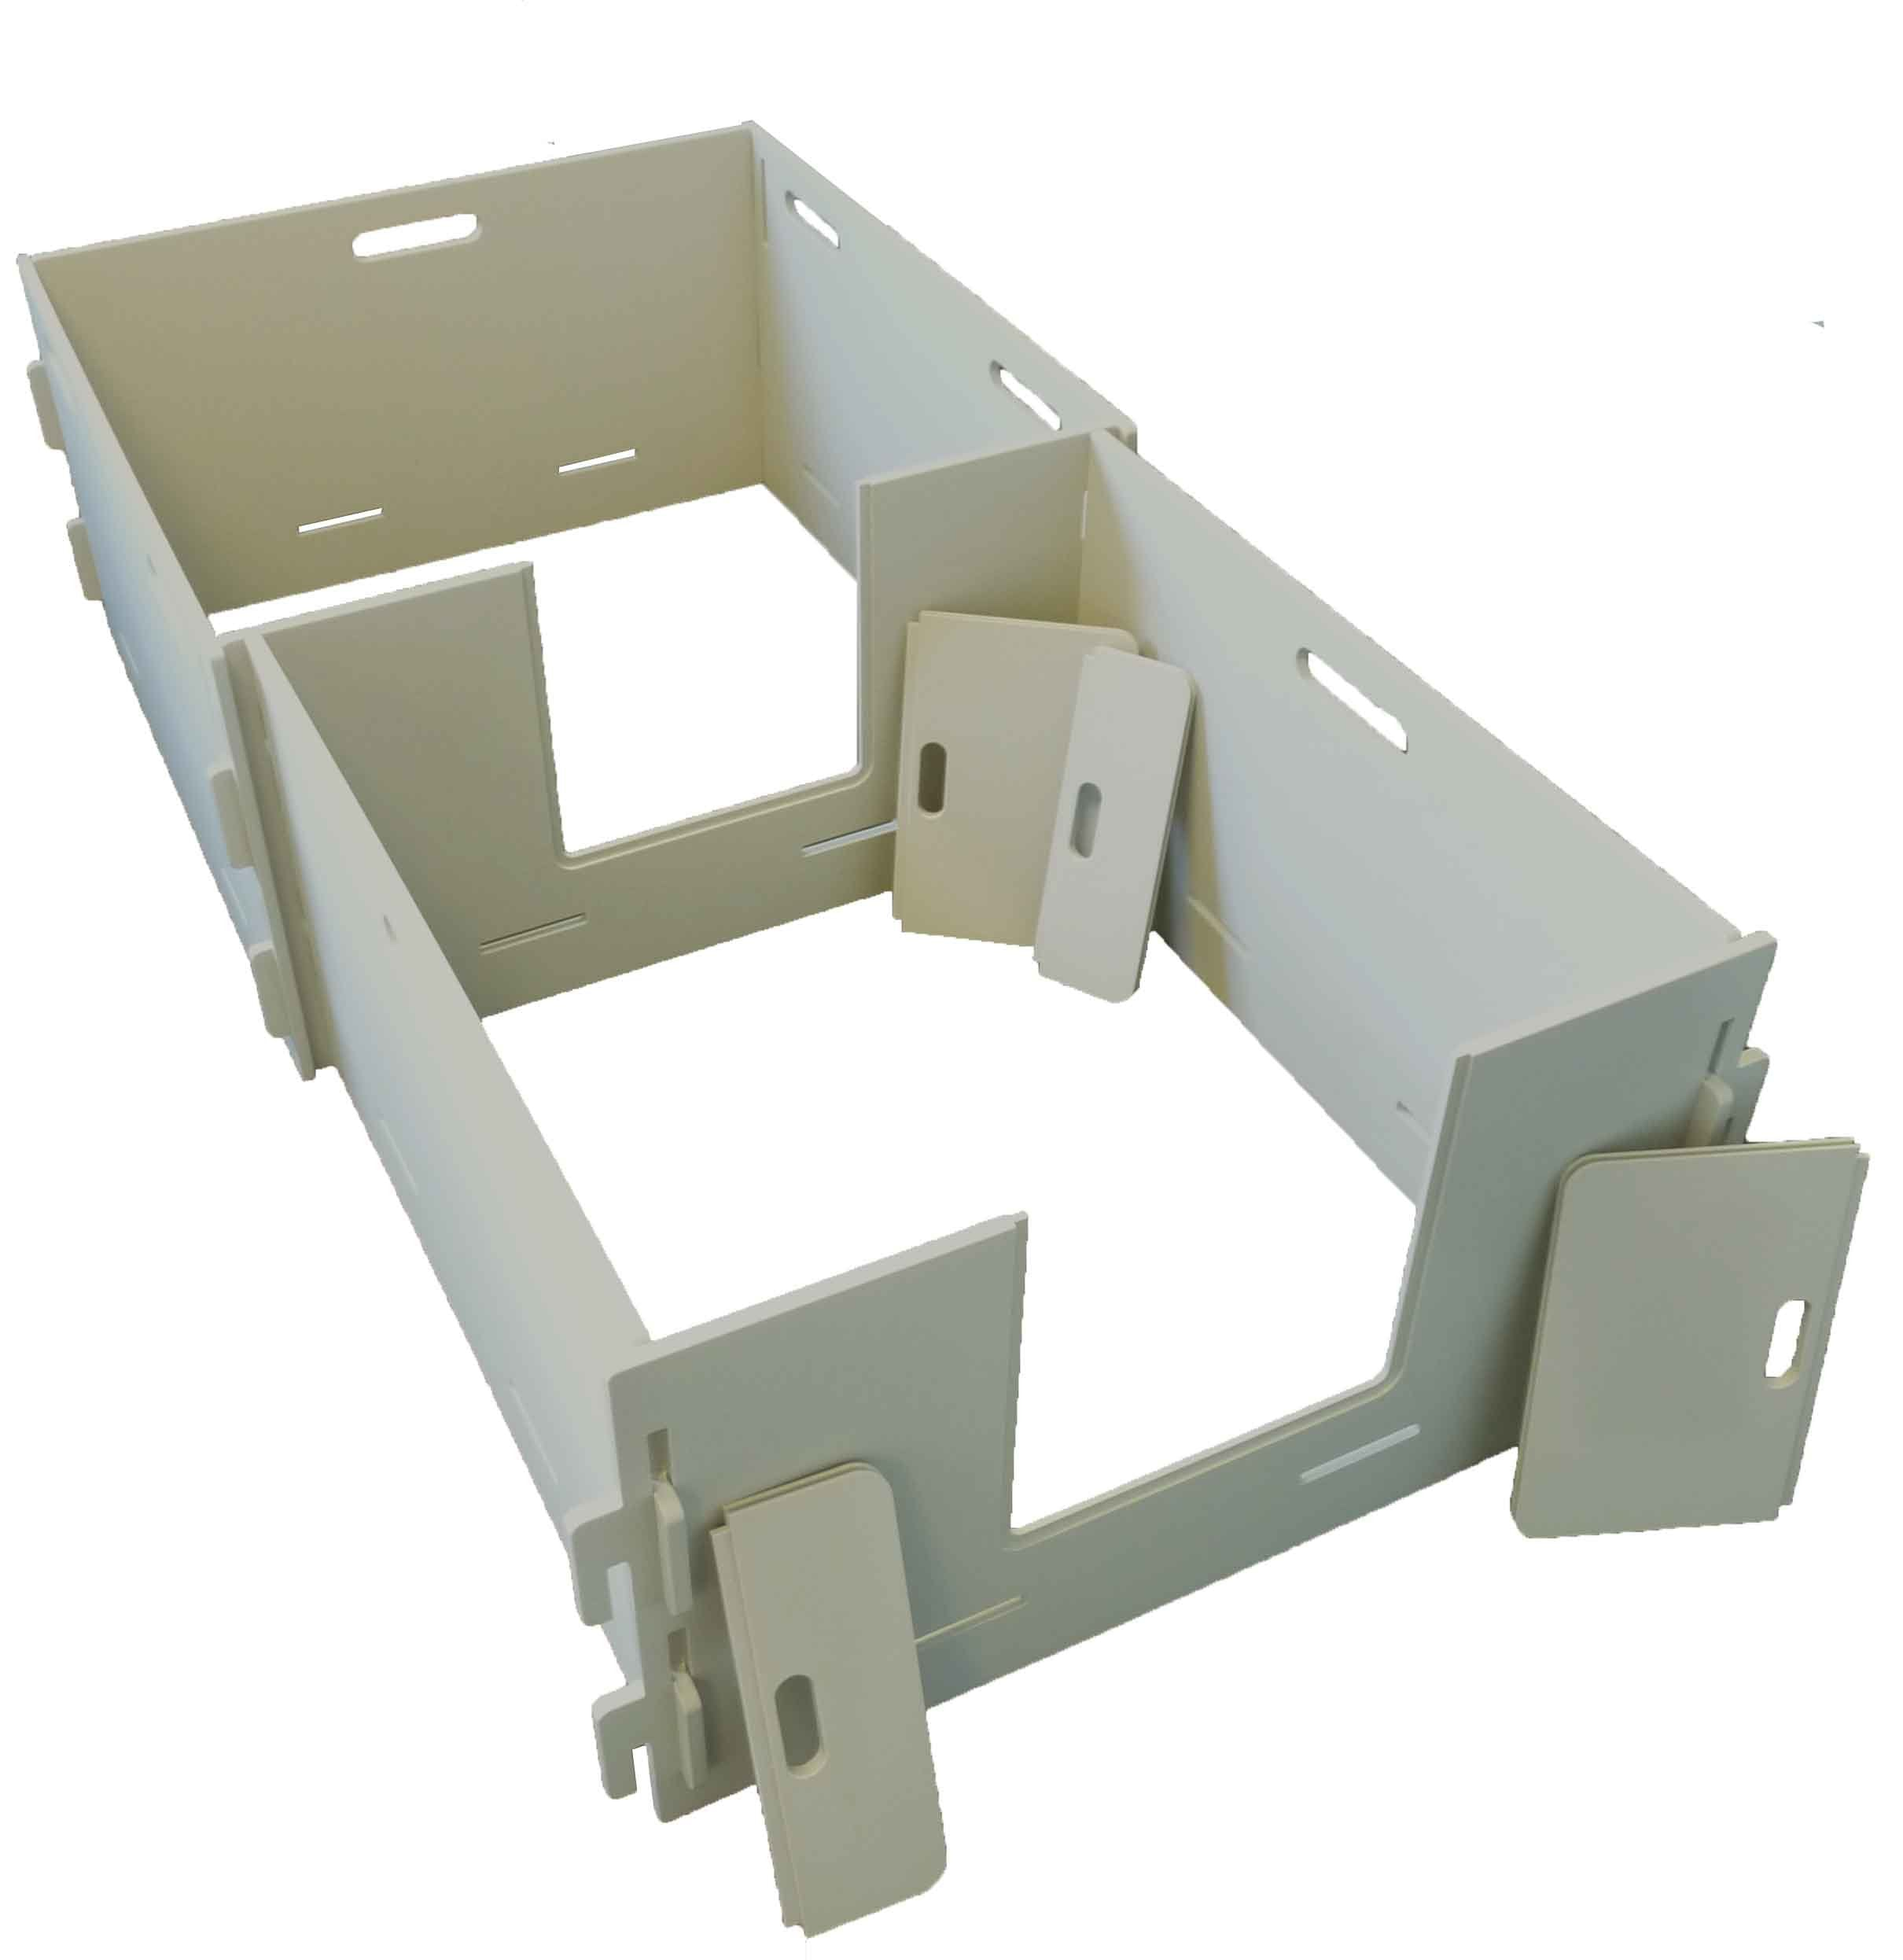 Lakeside Products - Magnapen Extension Pen For Magnabox Whelping Boxes